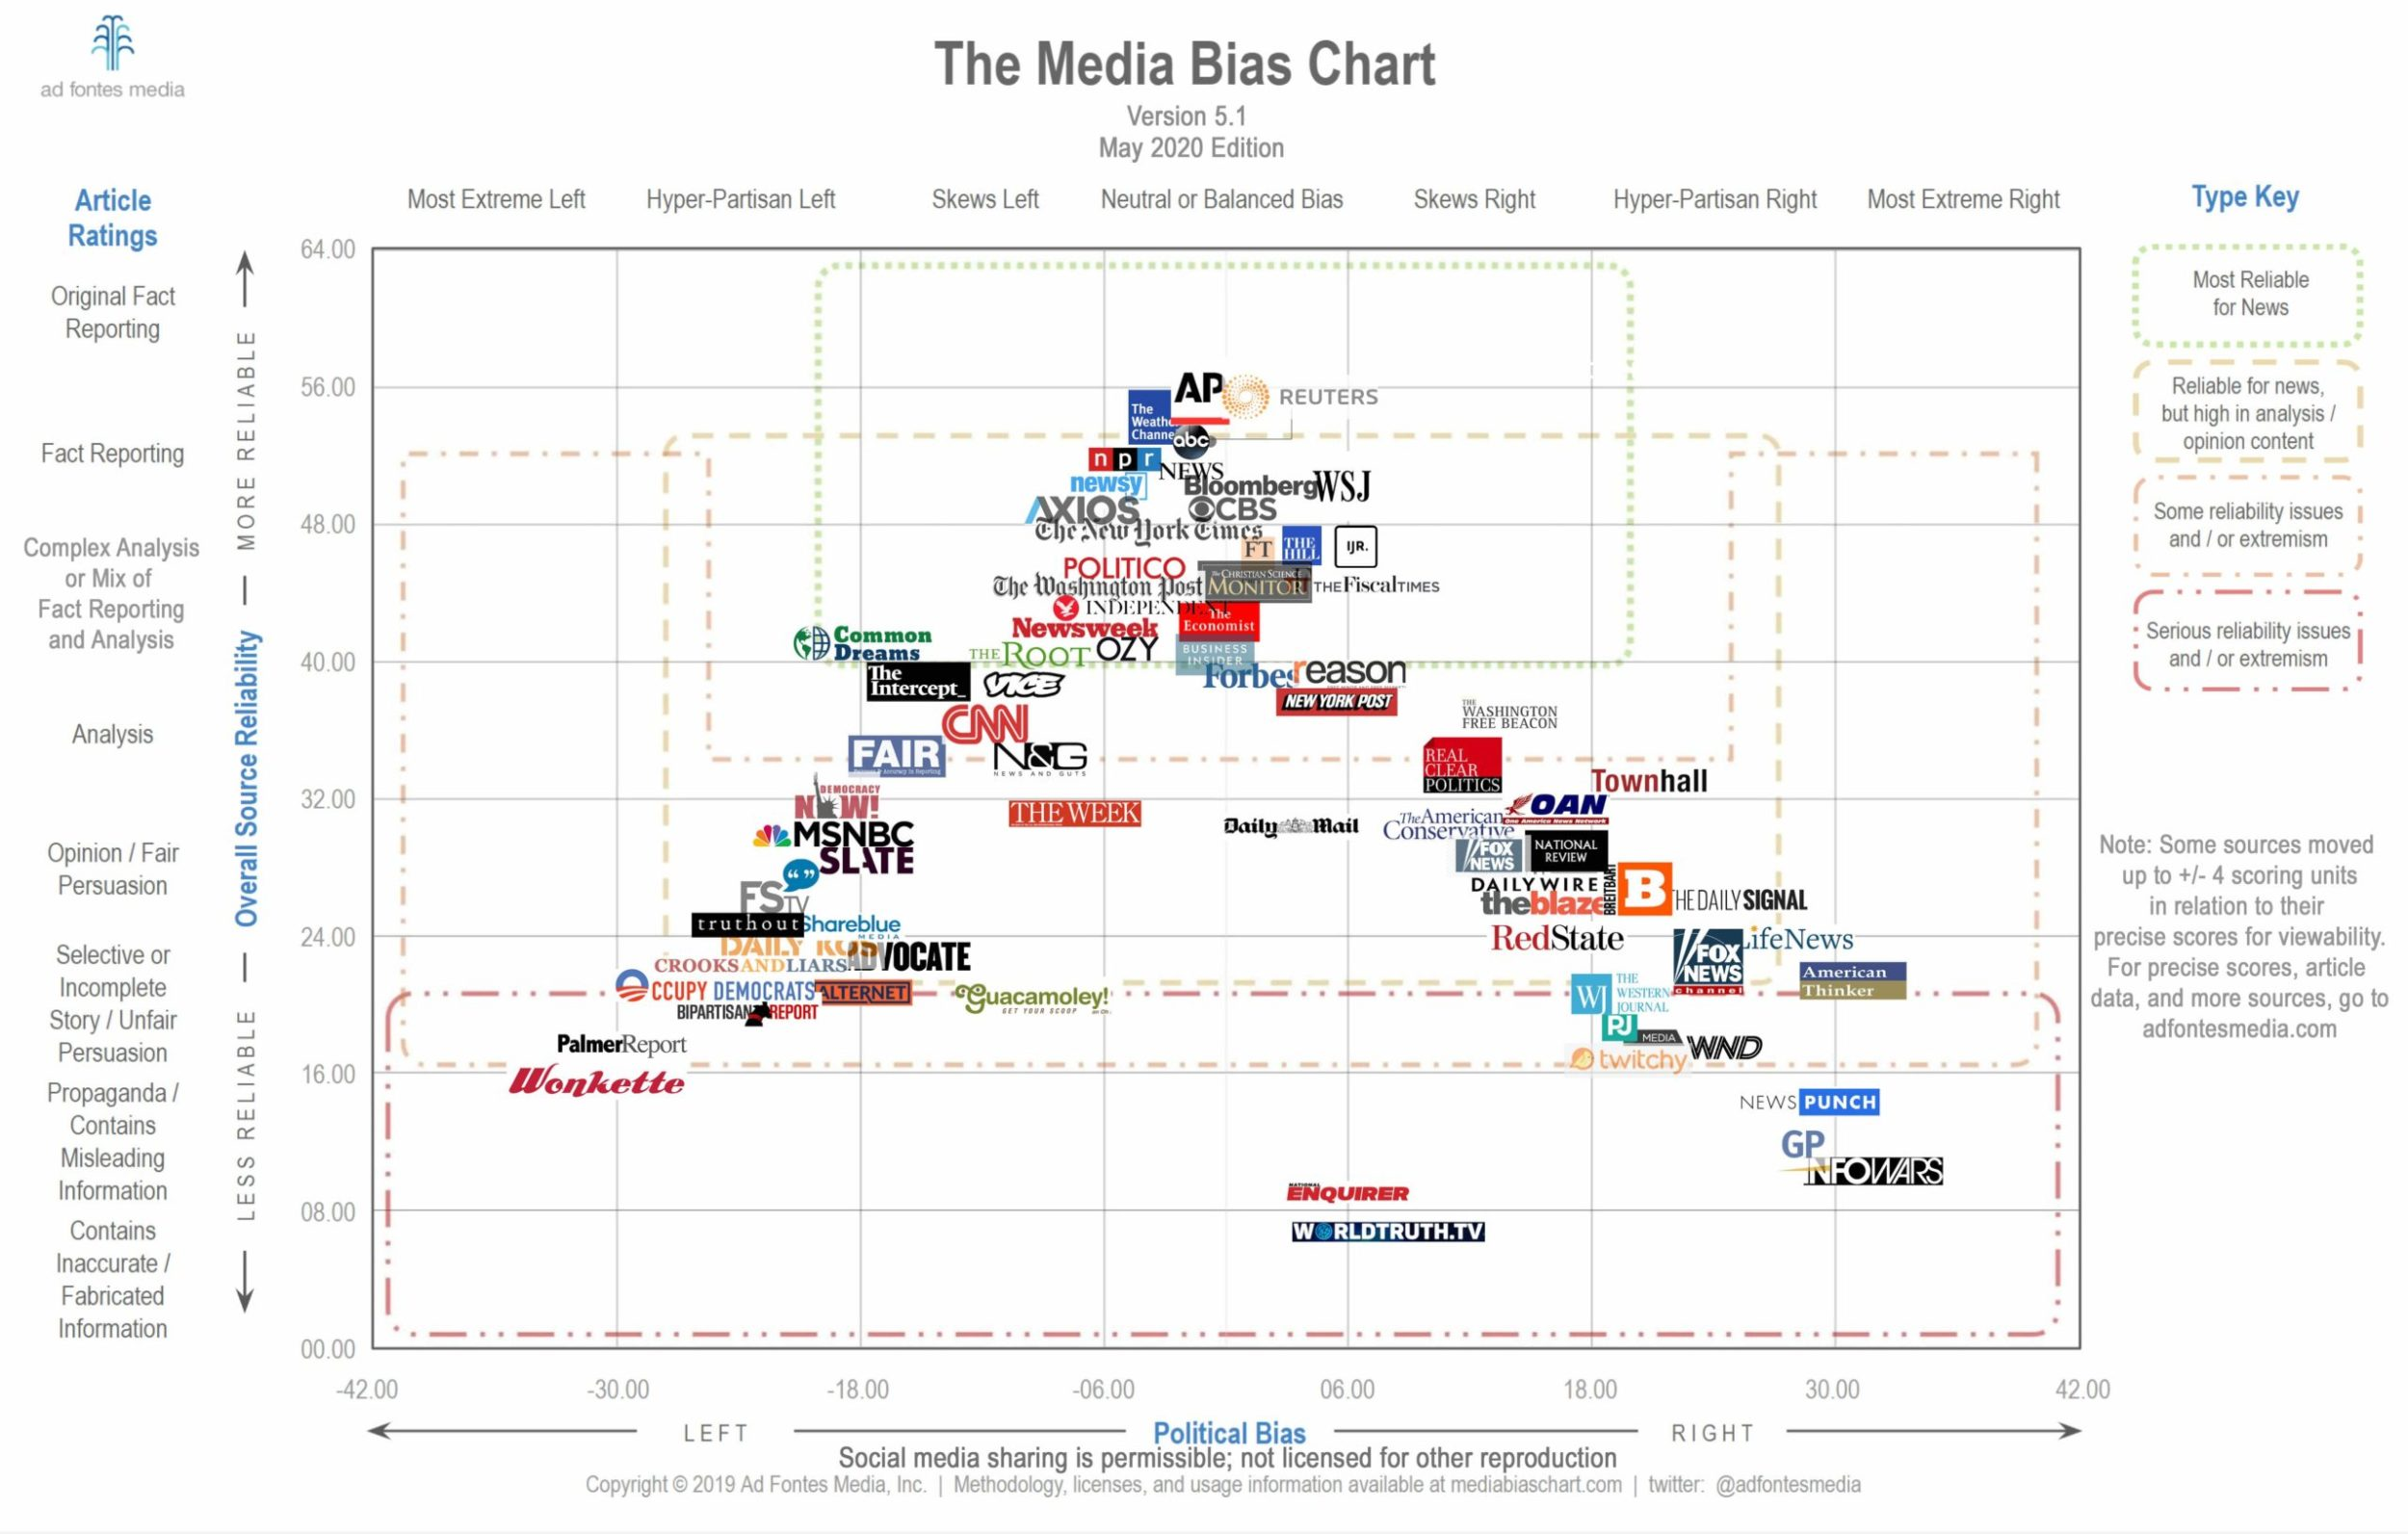 Media Bias Chart 5.1 May 2020 Edition